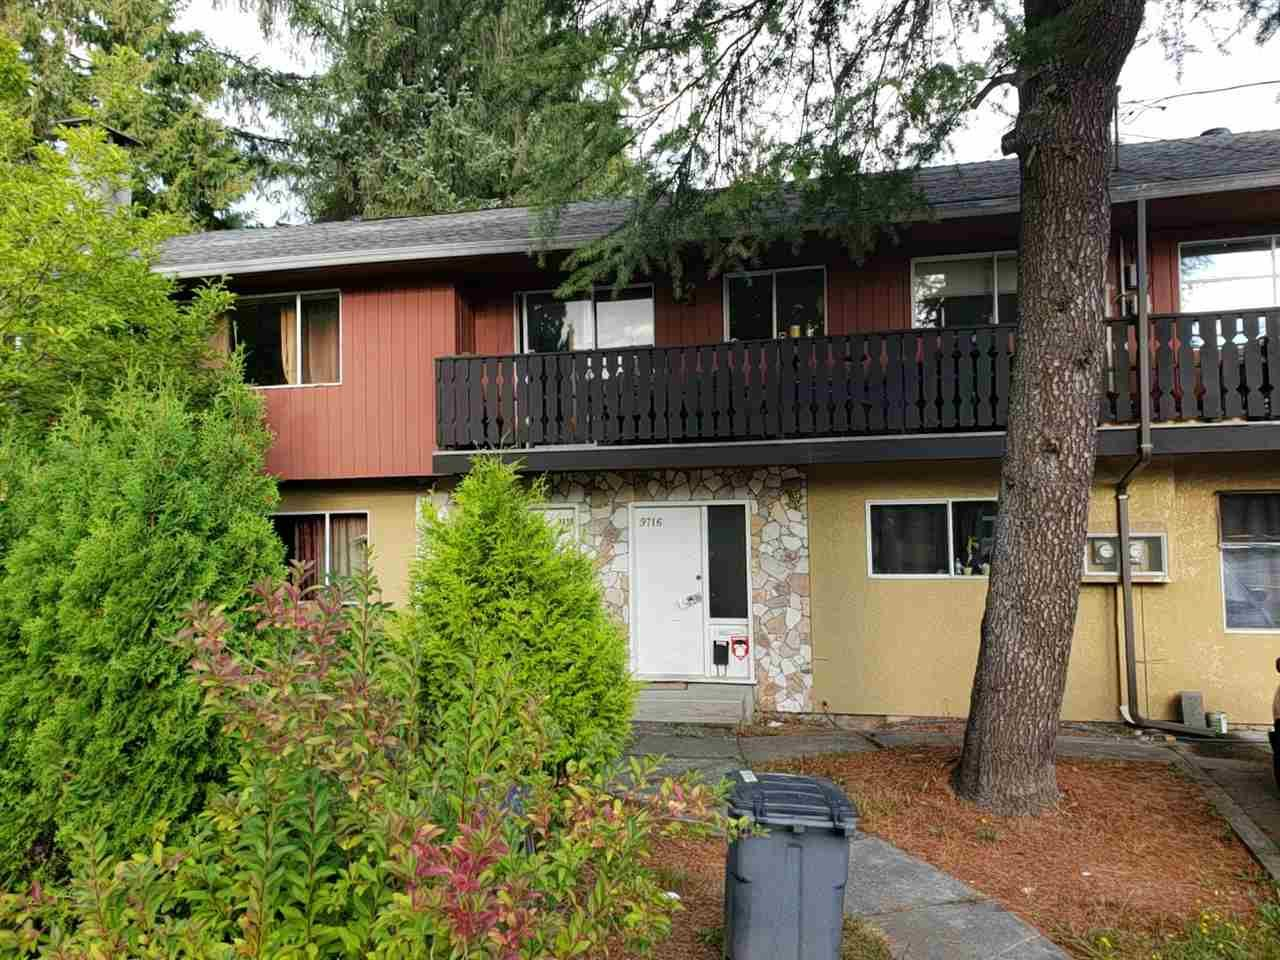 """Main Photo: 9716 - 9718 156 Street in Surrey: Guildford Duplex for sale in """"GUILDFORD"""" (North Surrey)  : MLS®# R2306106"""